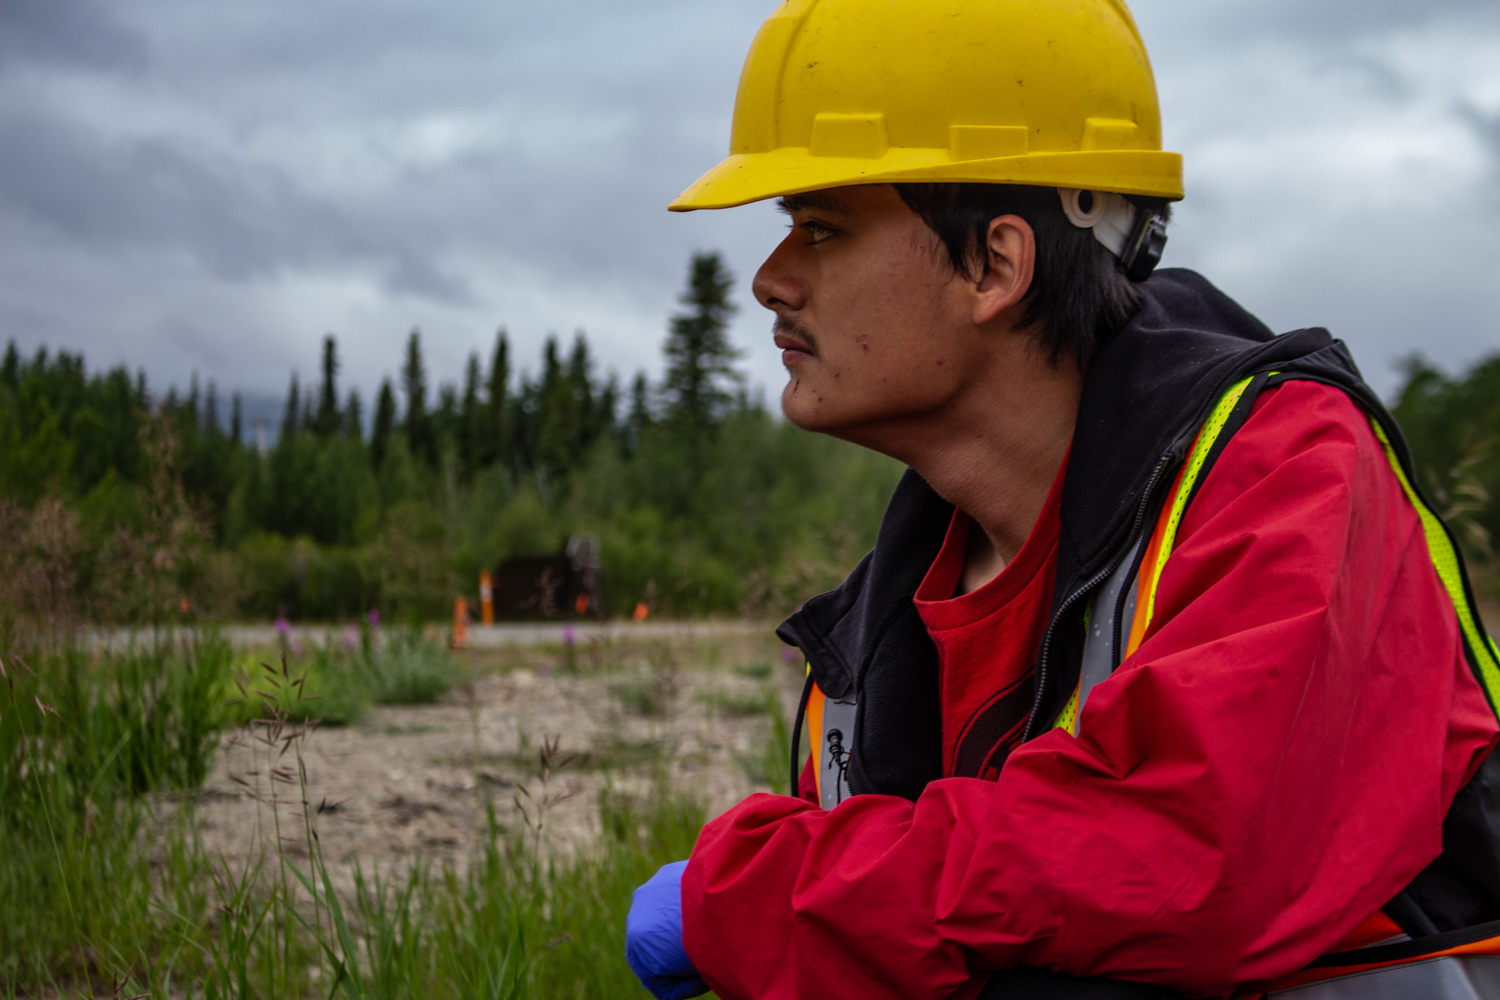 David Wally, 18, is one of 16 stewards working to clean up the land around Carcross. Photo by Madeline Lines.